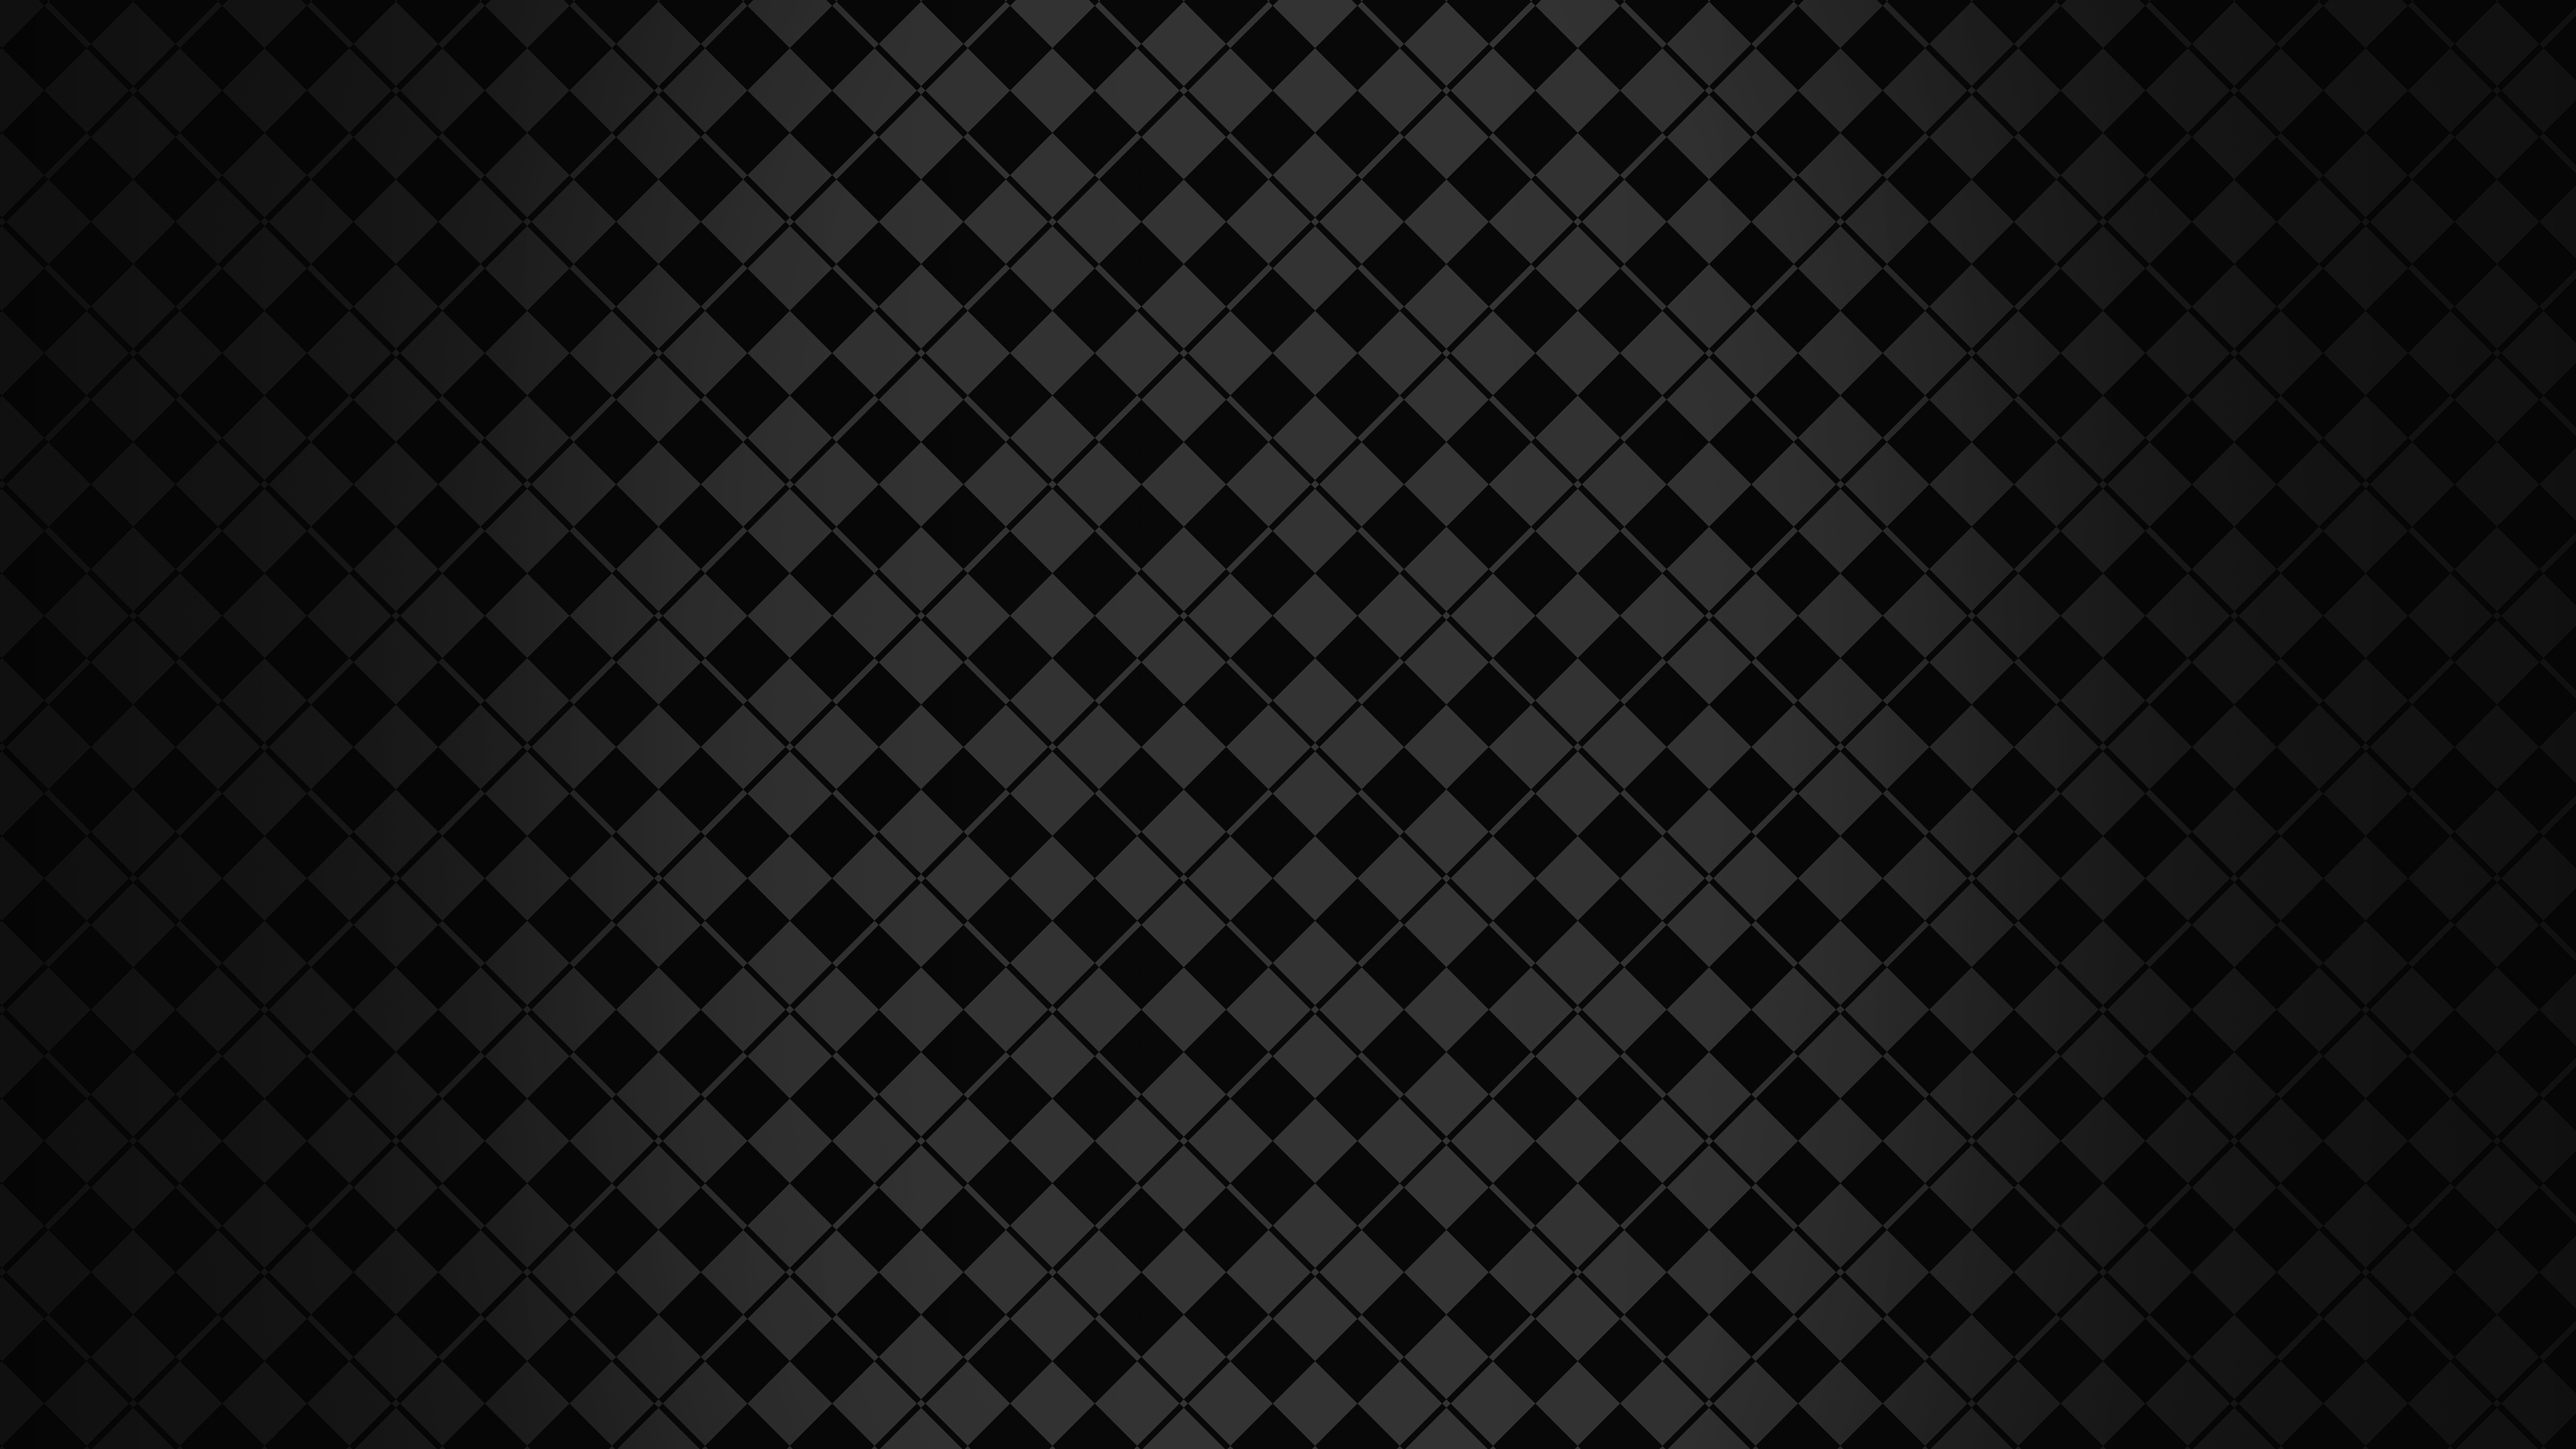 219 Texture Hd Wallpapers Background Images Wallpaper Abyss